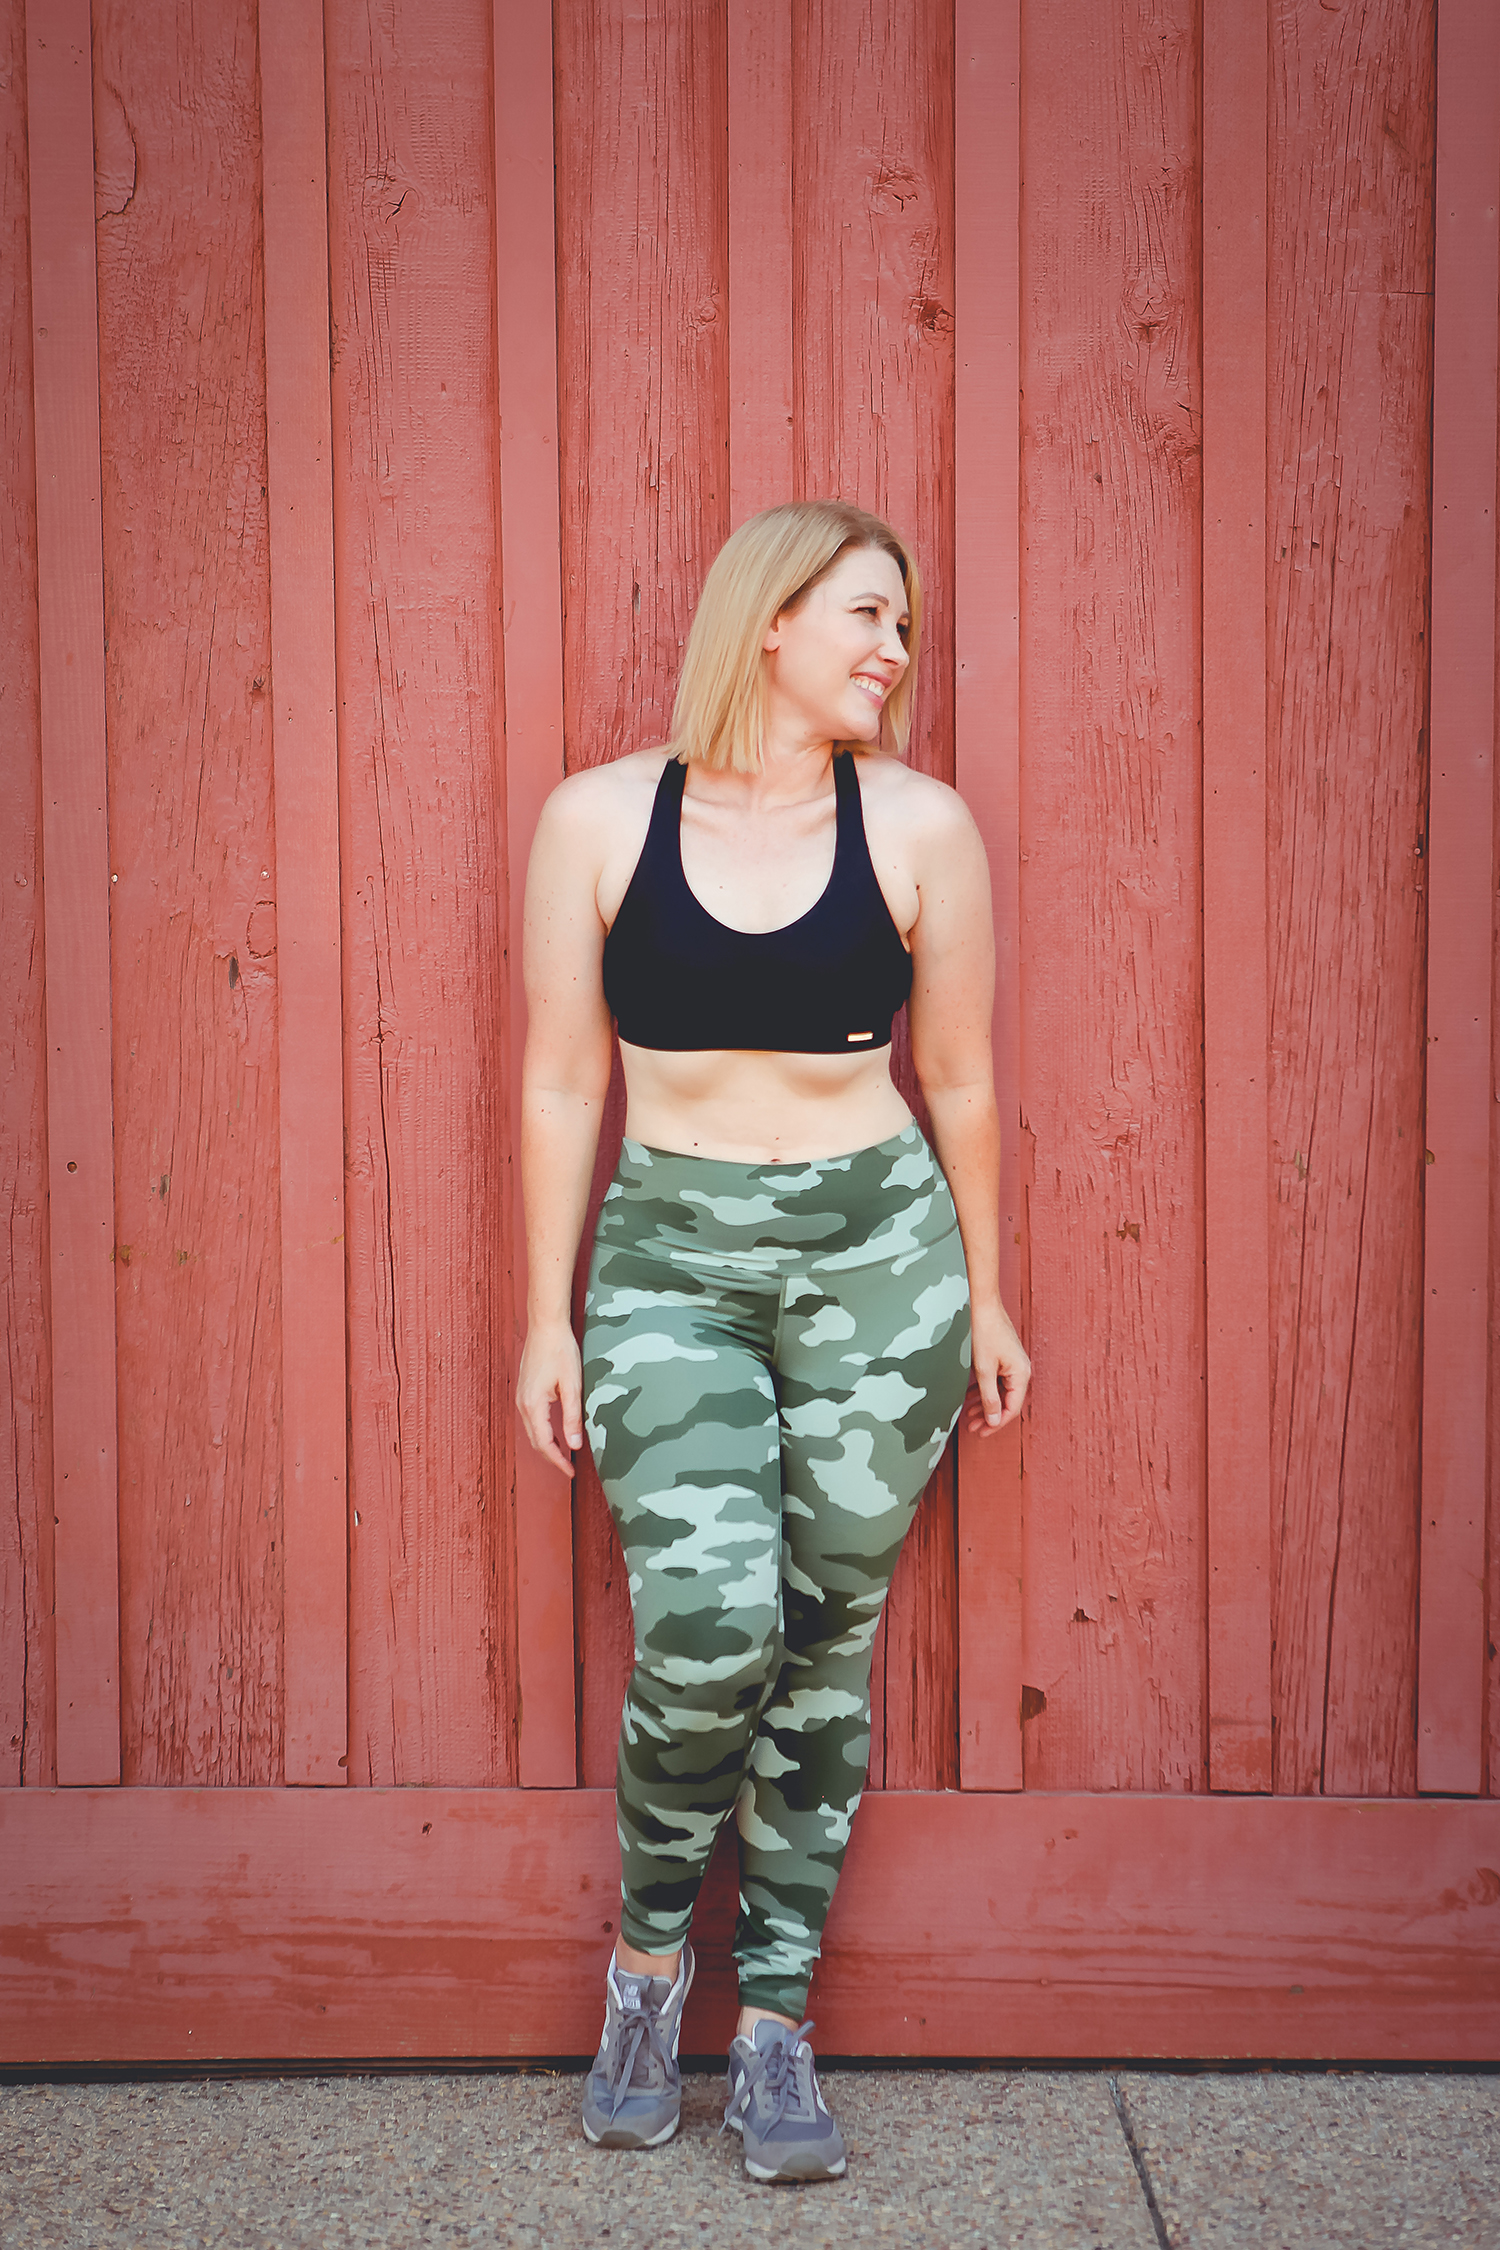 These camo leggings are perfect fall activewear!